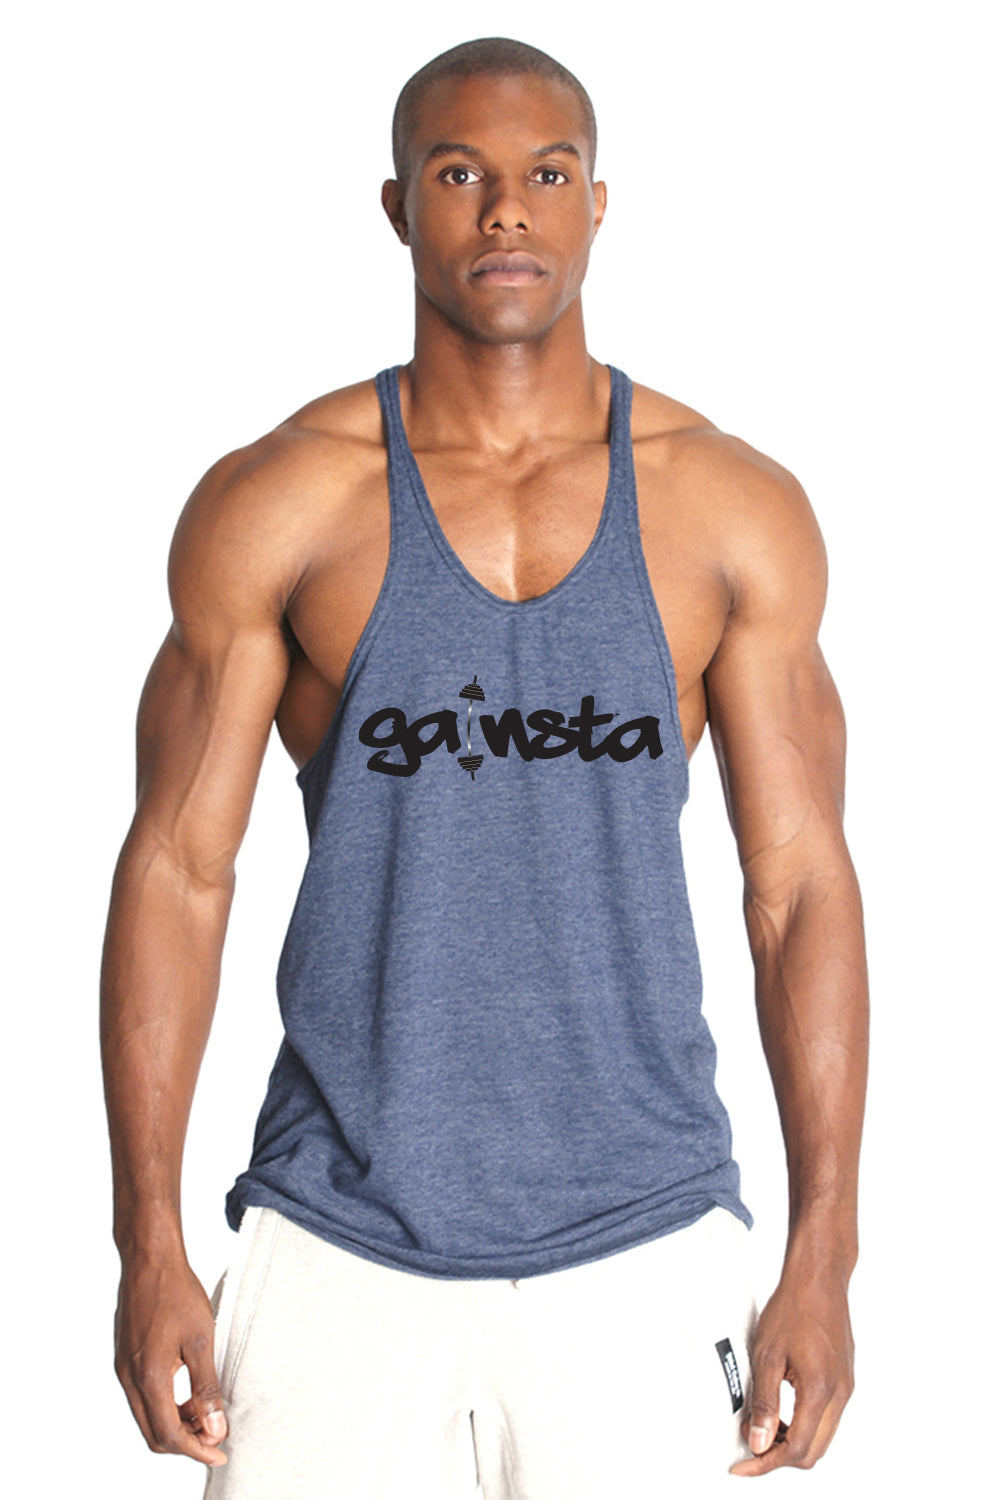 GAINSTA Triblend Stringer Tank Top